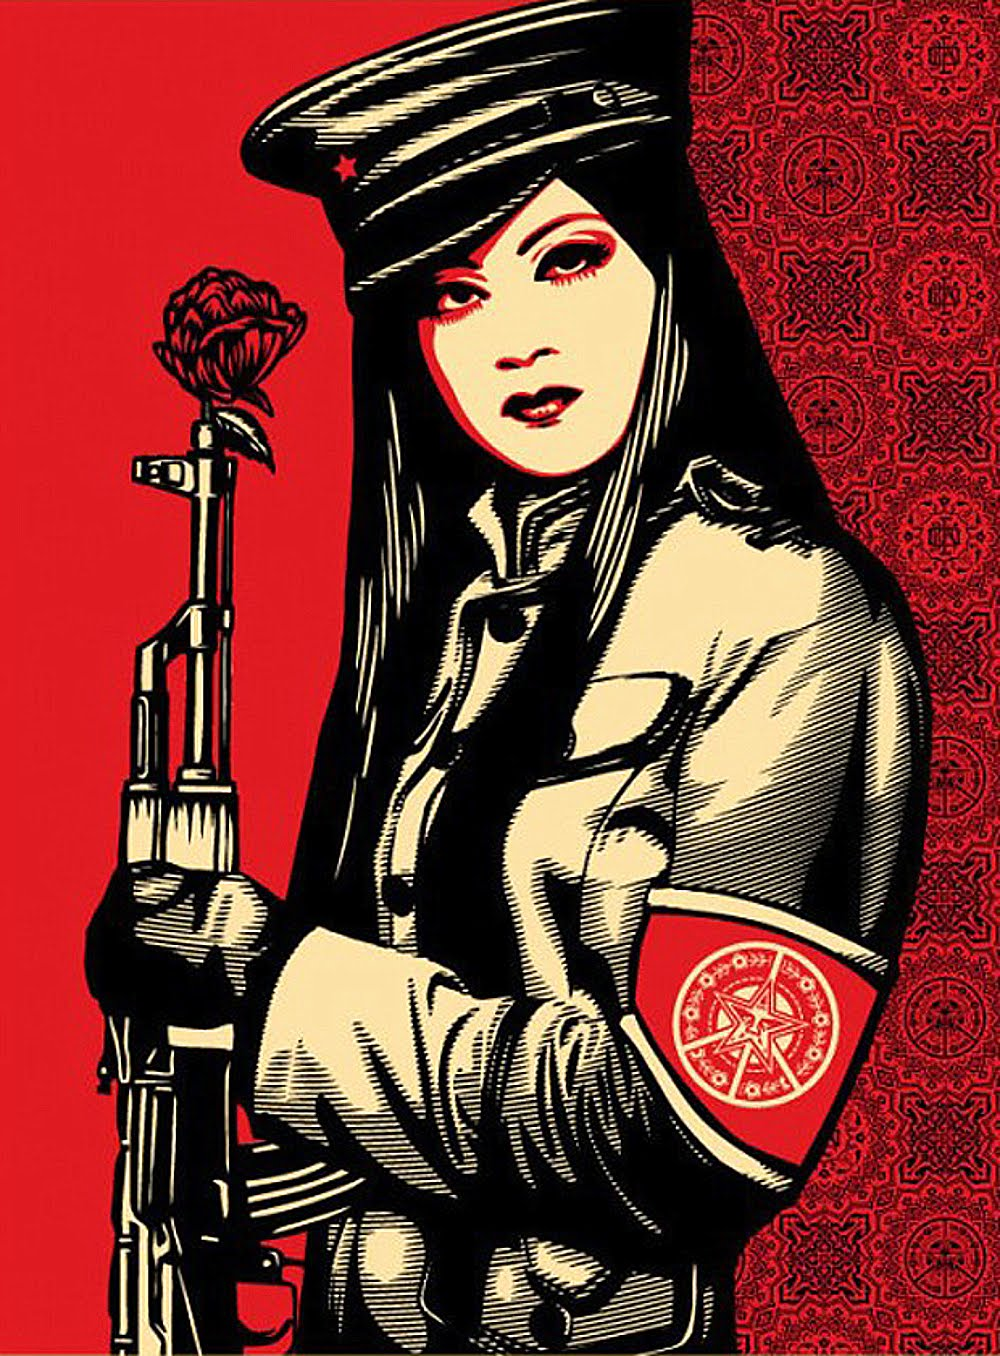 OBEY BY SHEPARD FAIREY...